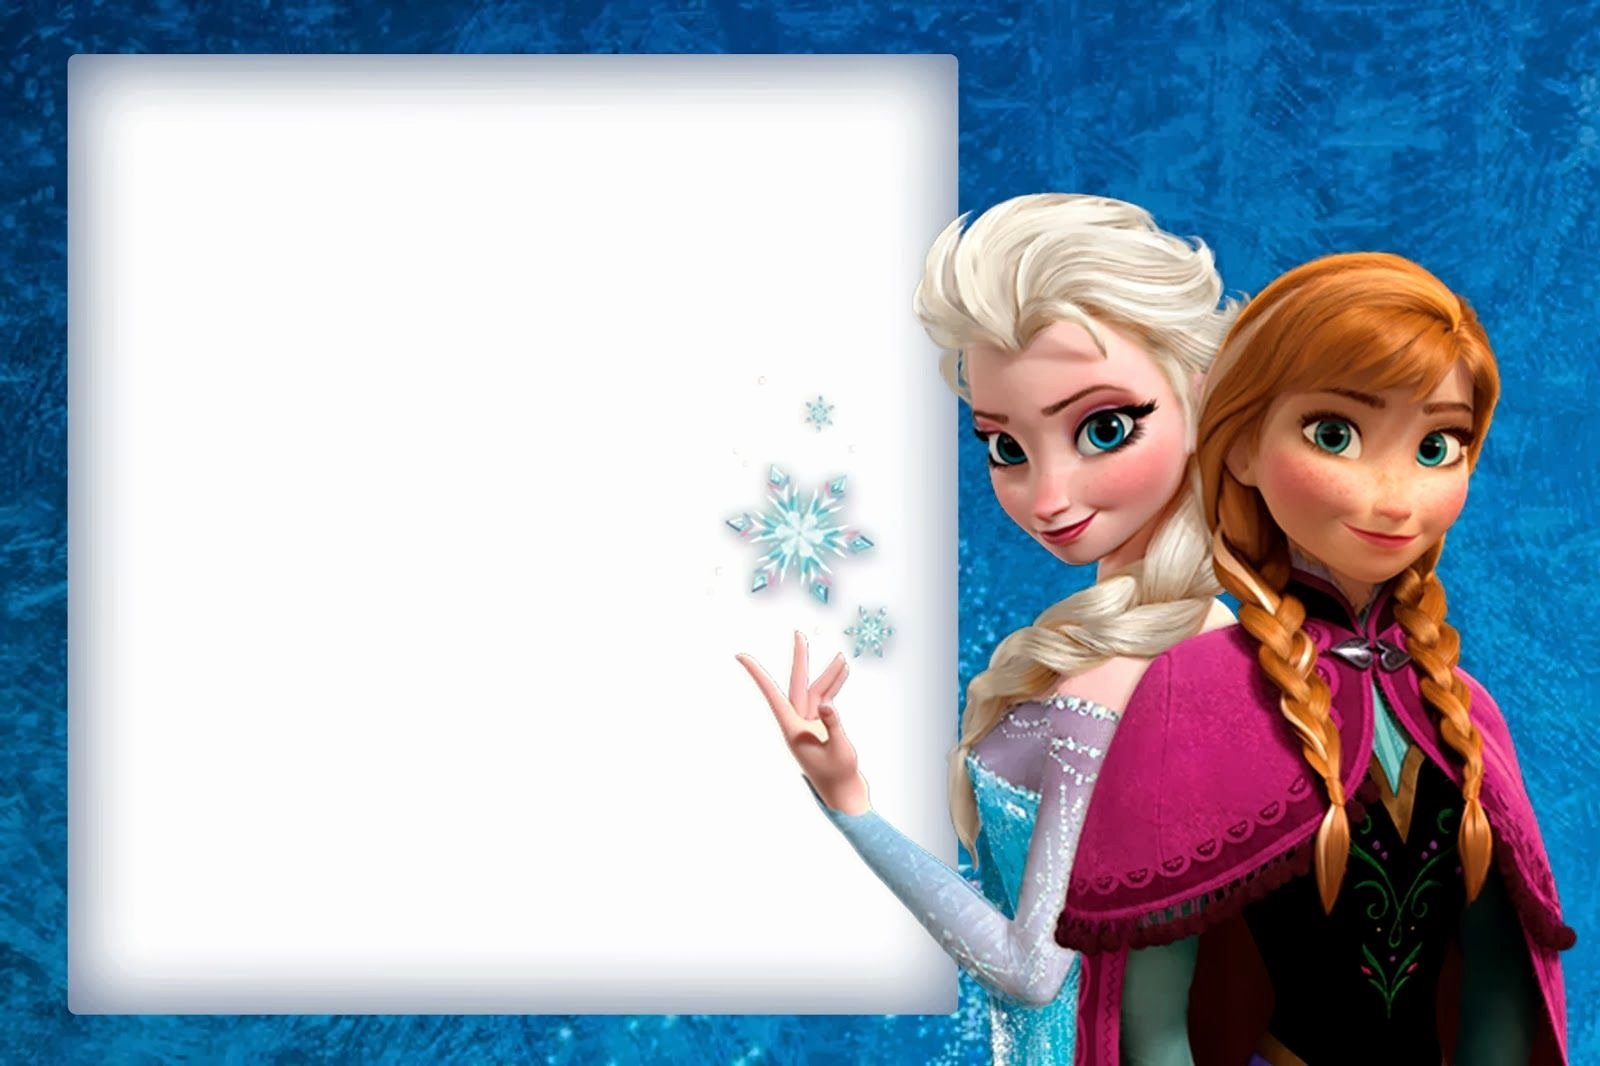 Free Frozen Invite Template Lovely Frozen Cute Free Printable Invitations A Few Nice Ones